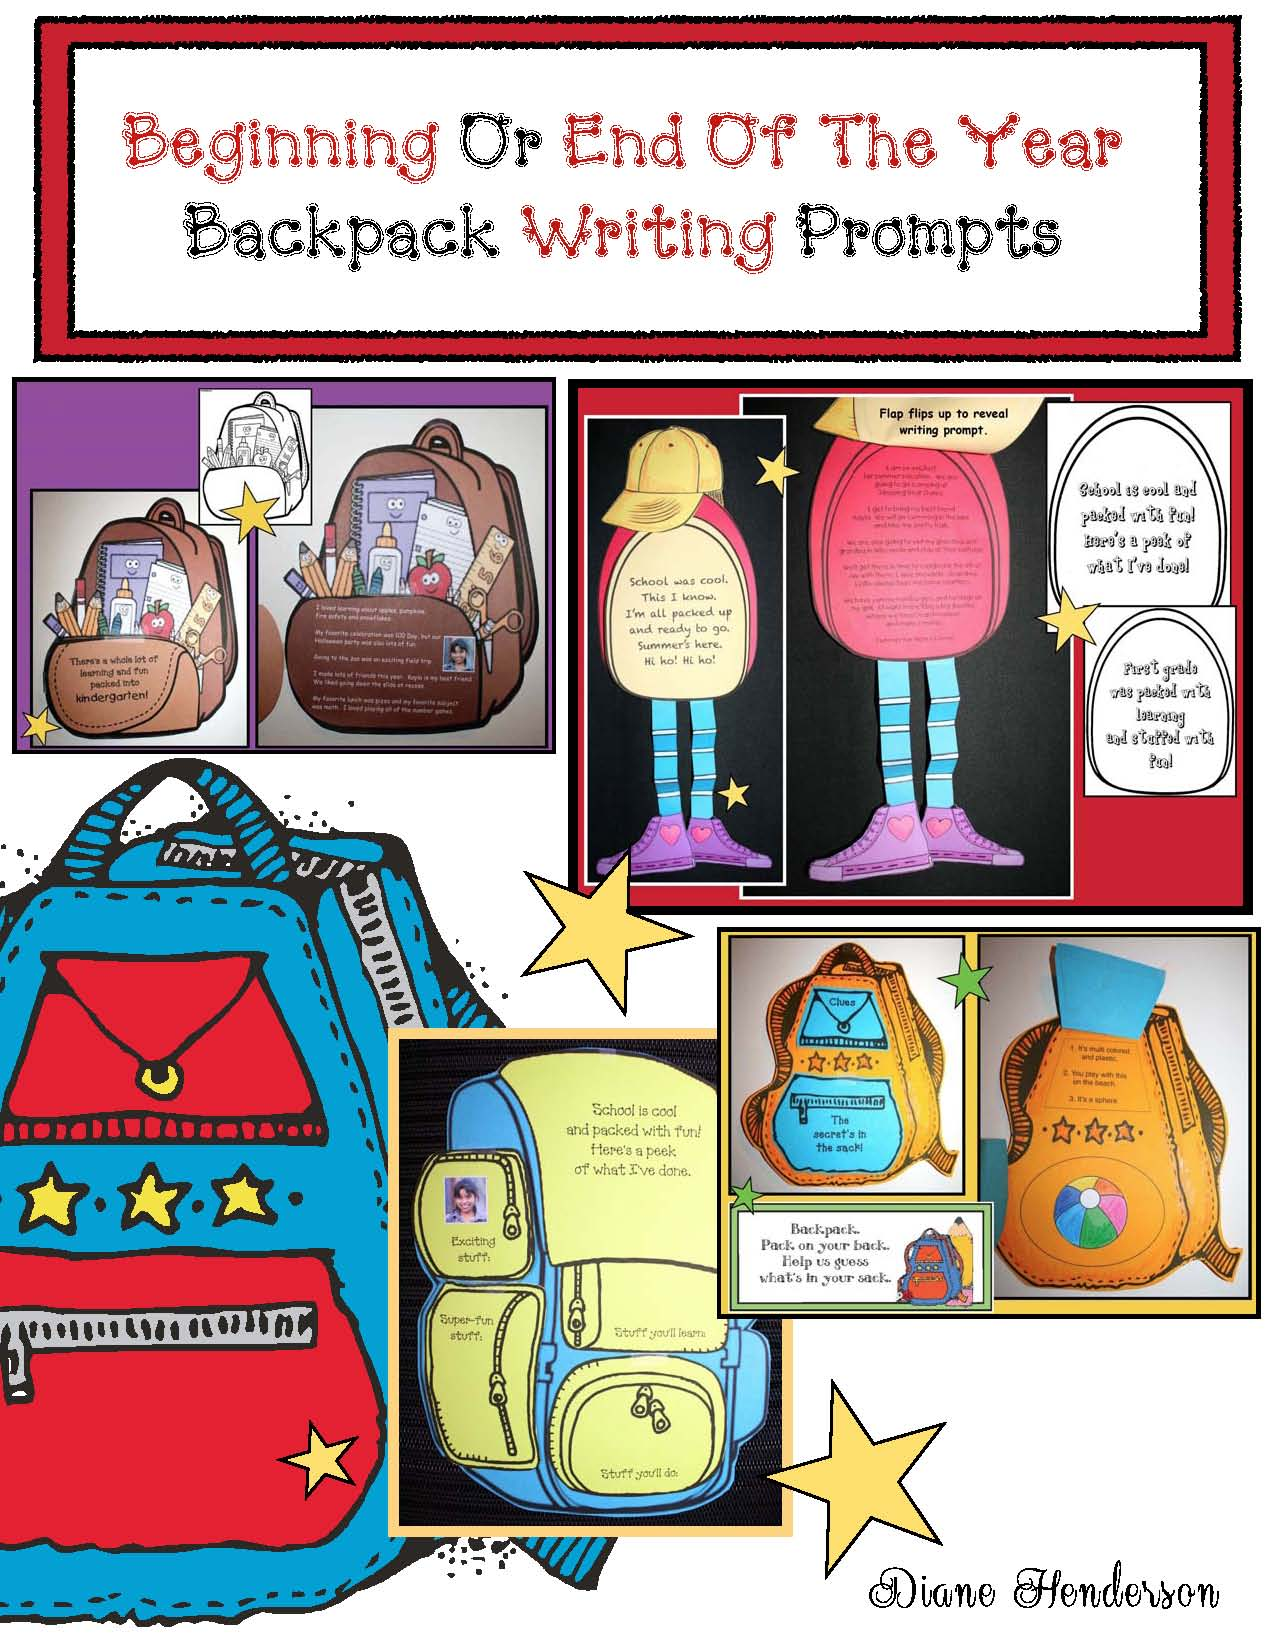 backpack activities, backpack crafts, end of the year crafts, end of the year activities, back to school crafts, back to school activities, writing prompts for next years students, end of the year writing prompts, back to school writing prompts, end of the year bulletin boards, summer writing prompts, summer crafts, summer bulletin boards,